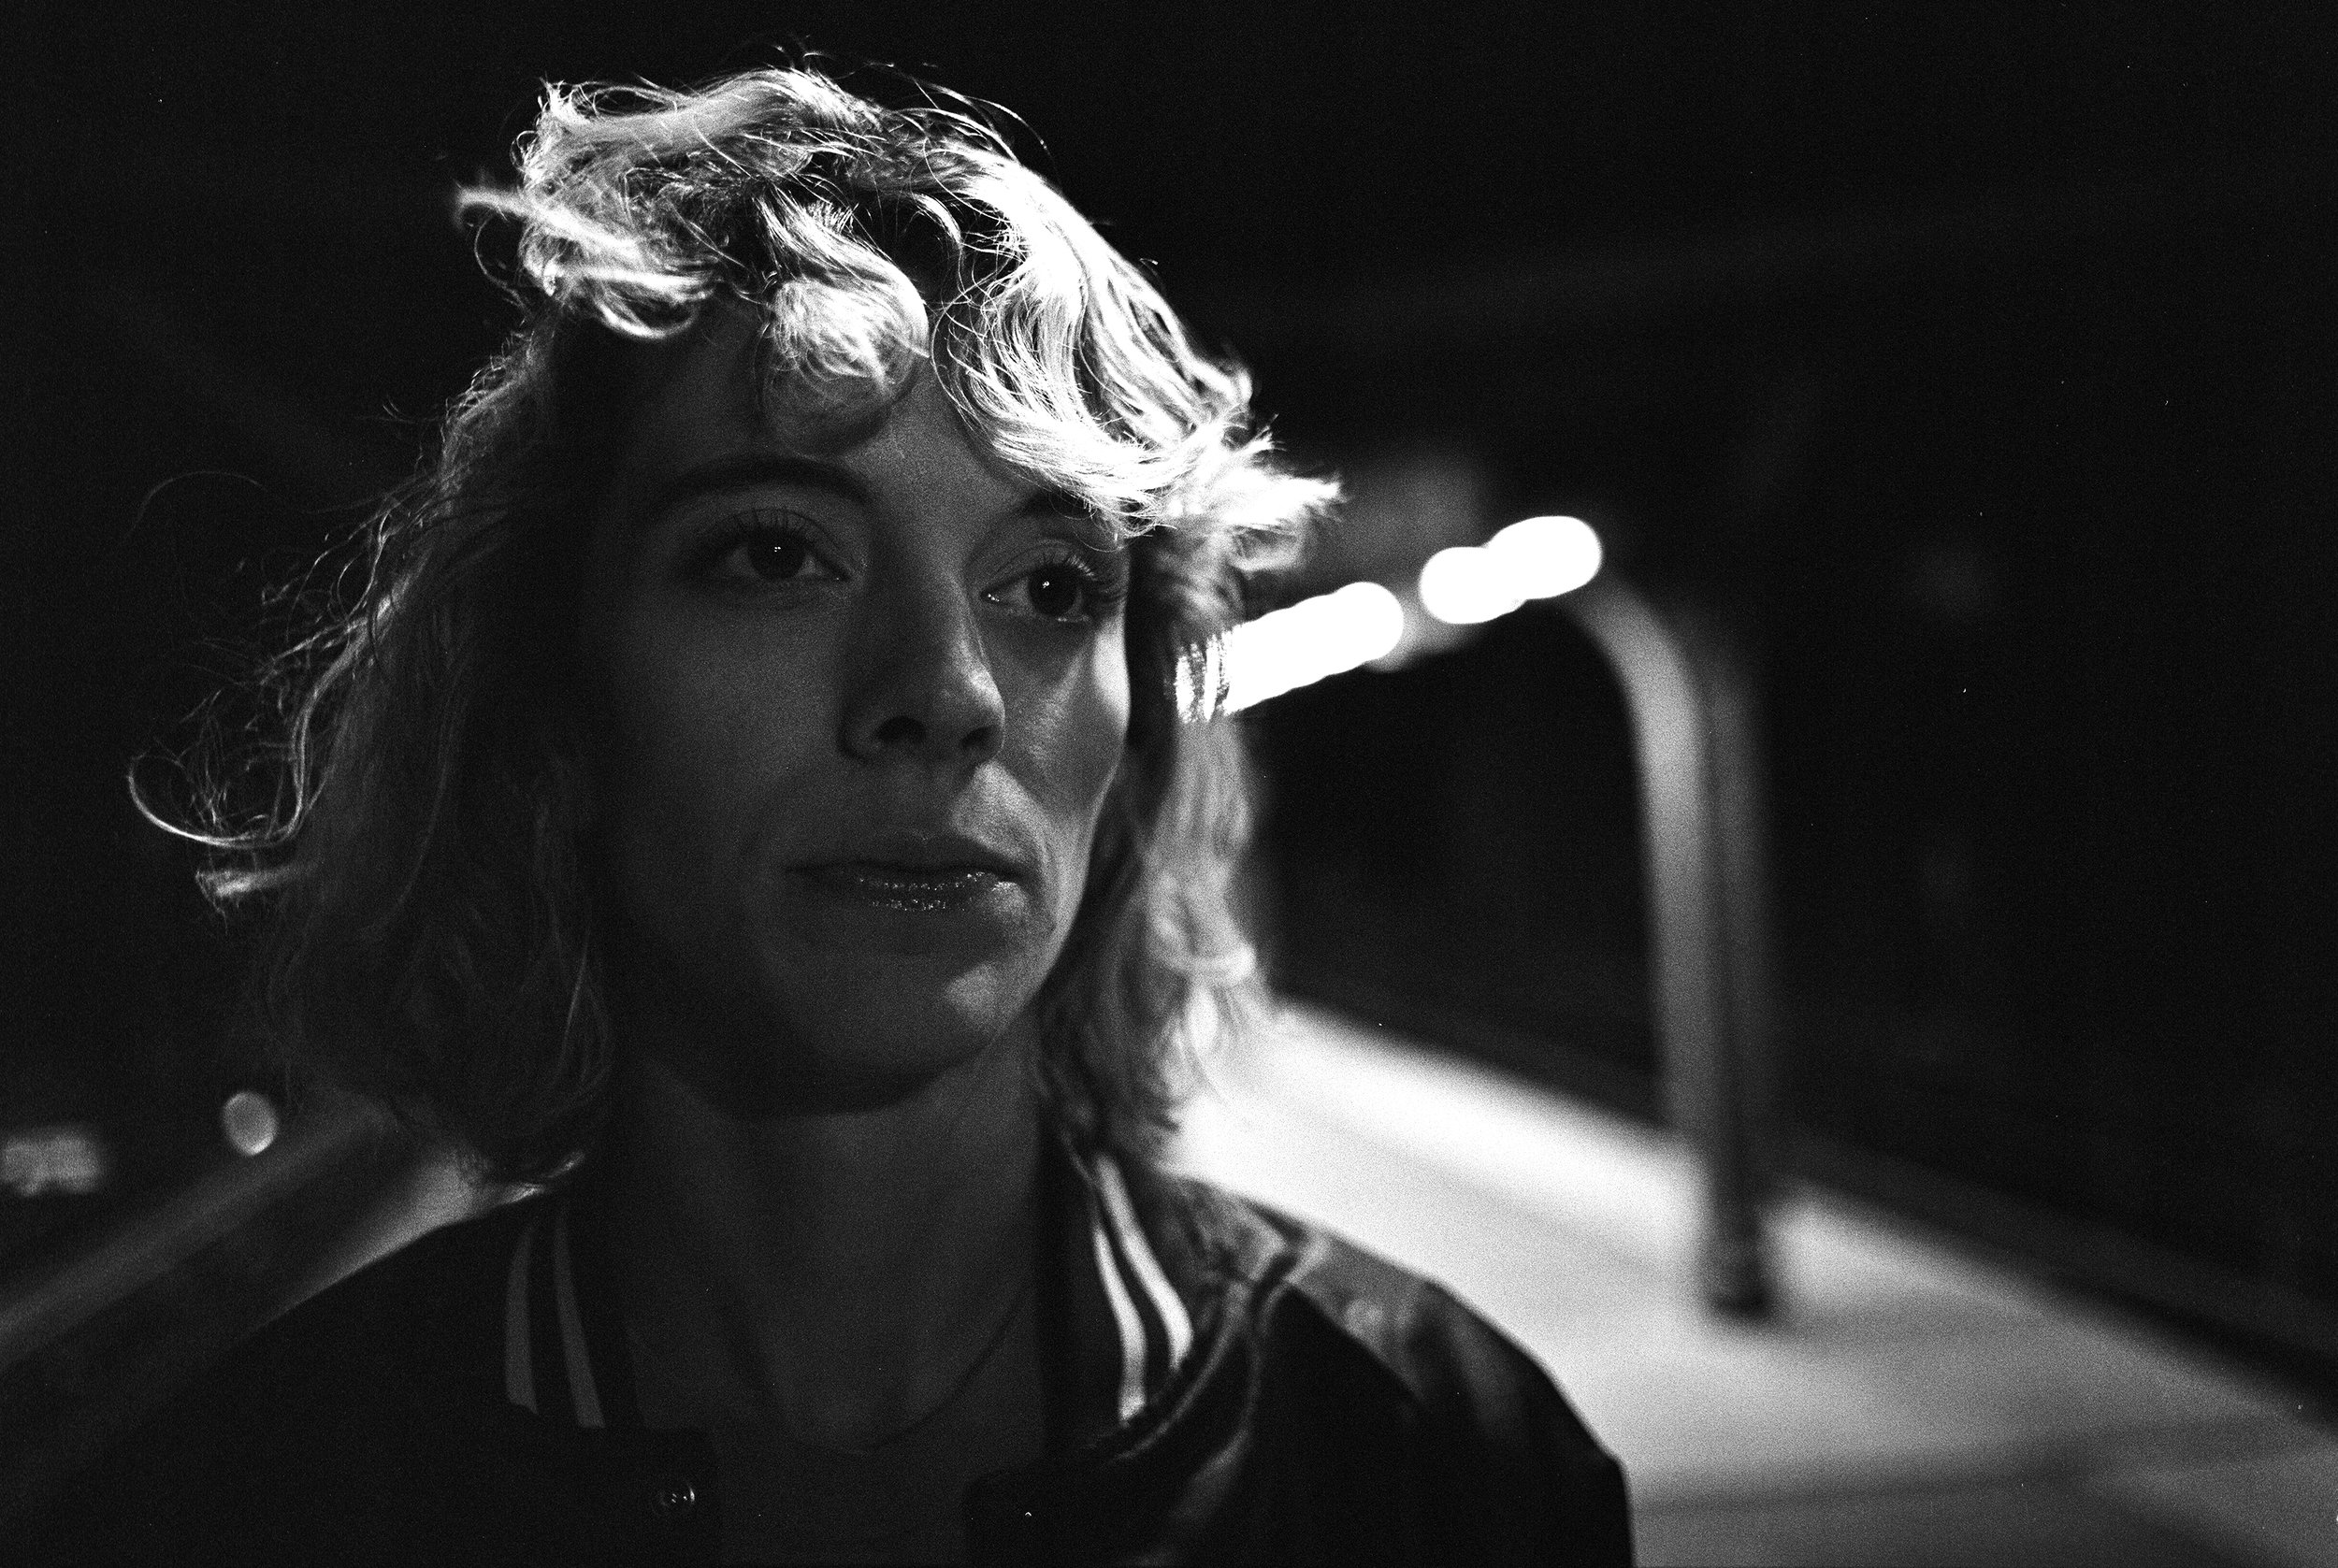 Mallory M Train - Ilford HP5+ Pushed 2 Stops